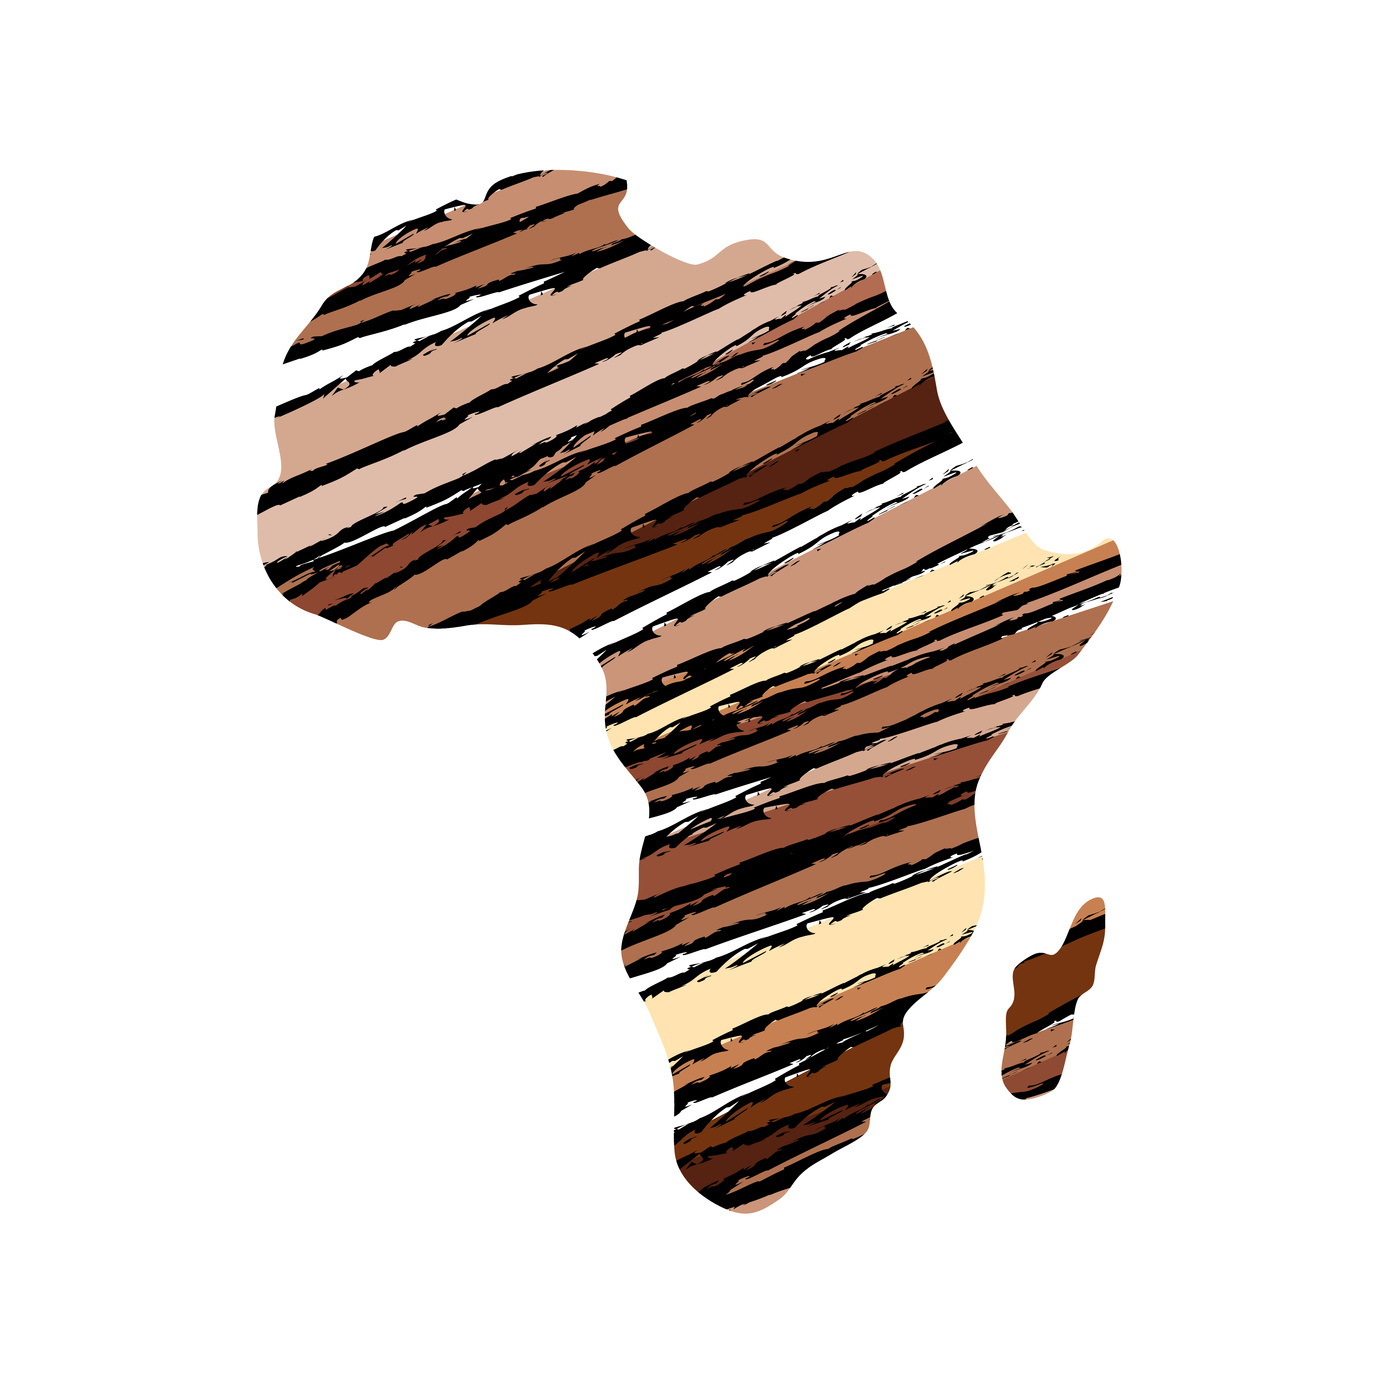 Compuscan operates across seven African countries